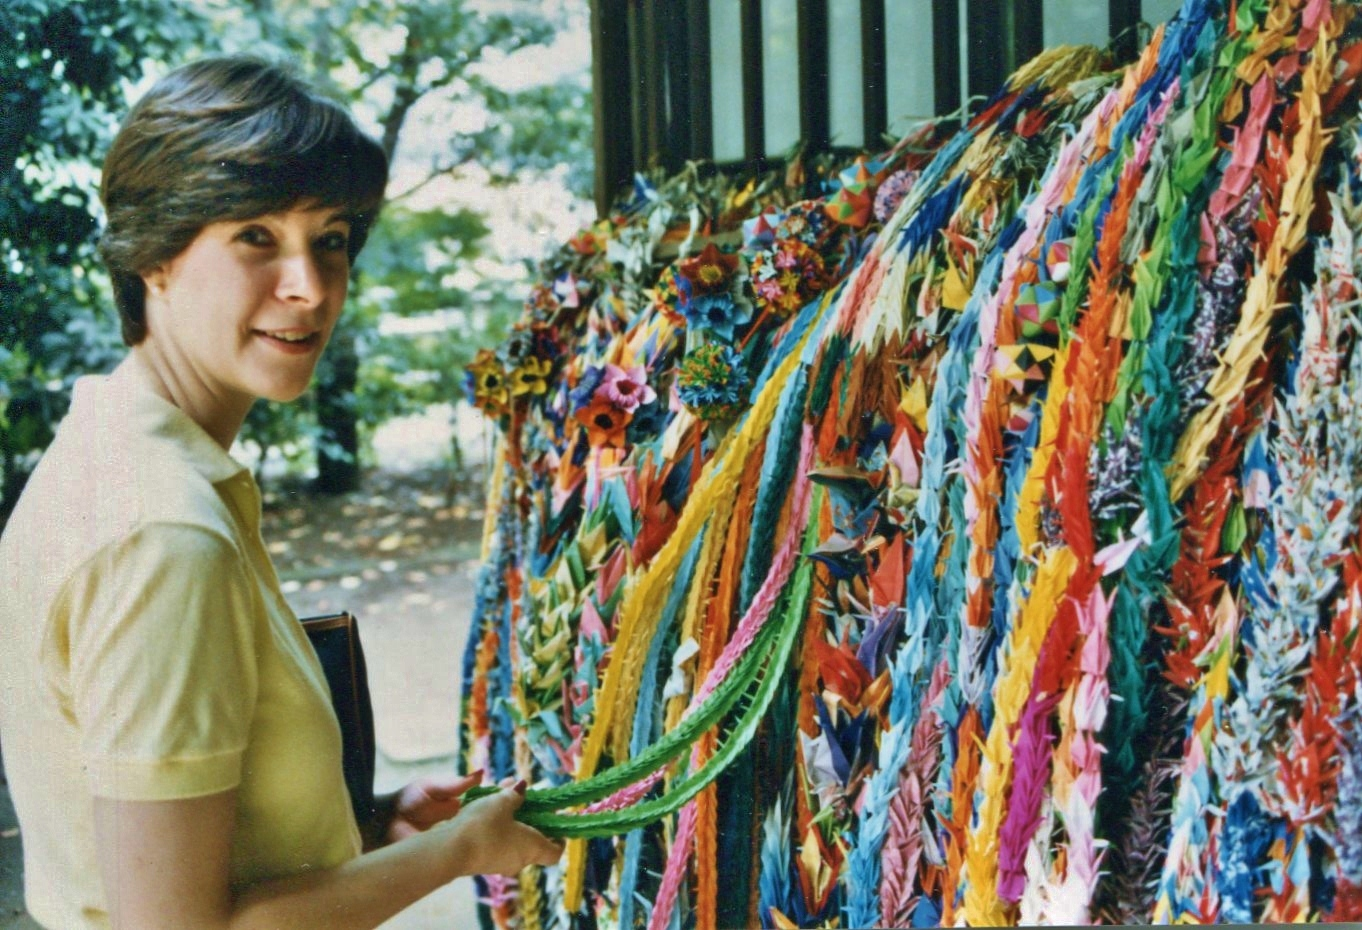 Chains of origami cranes